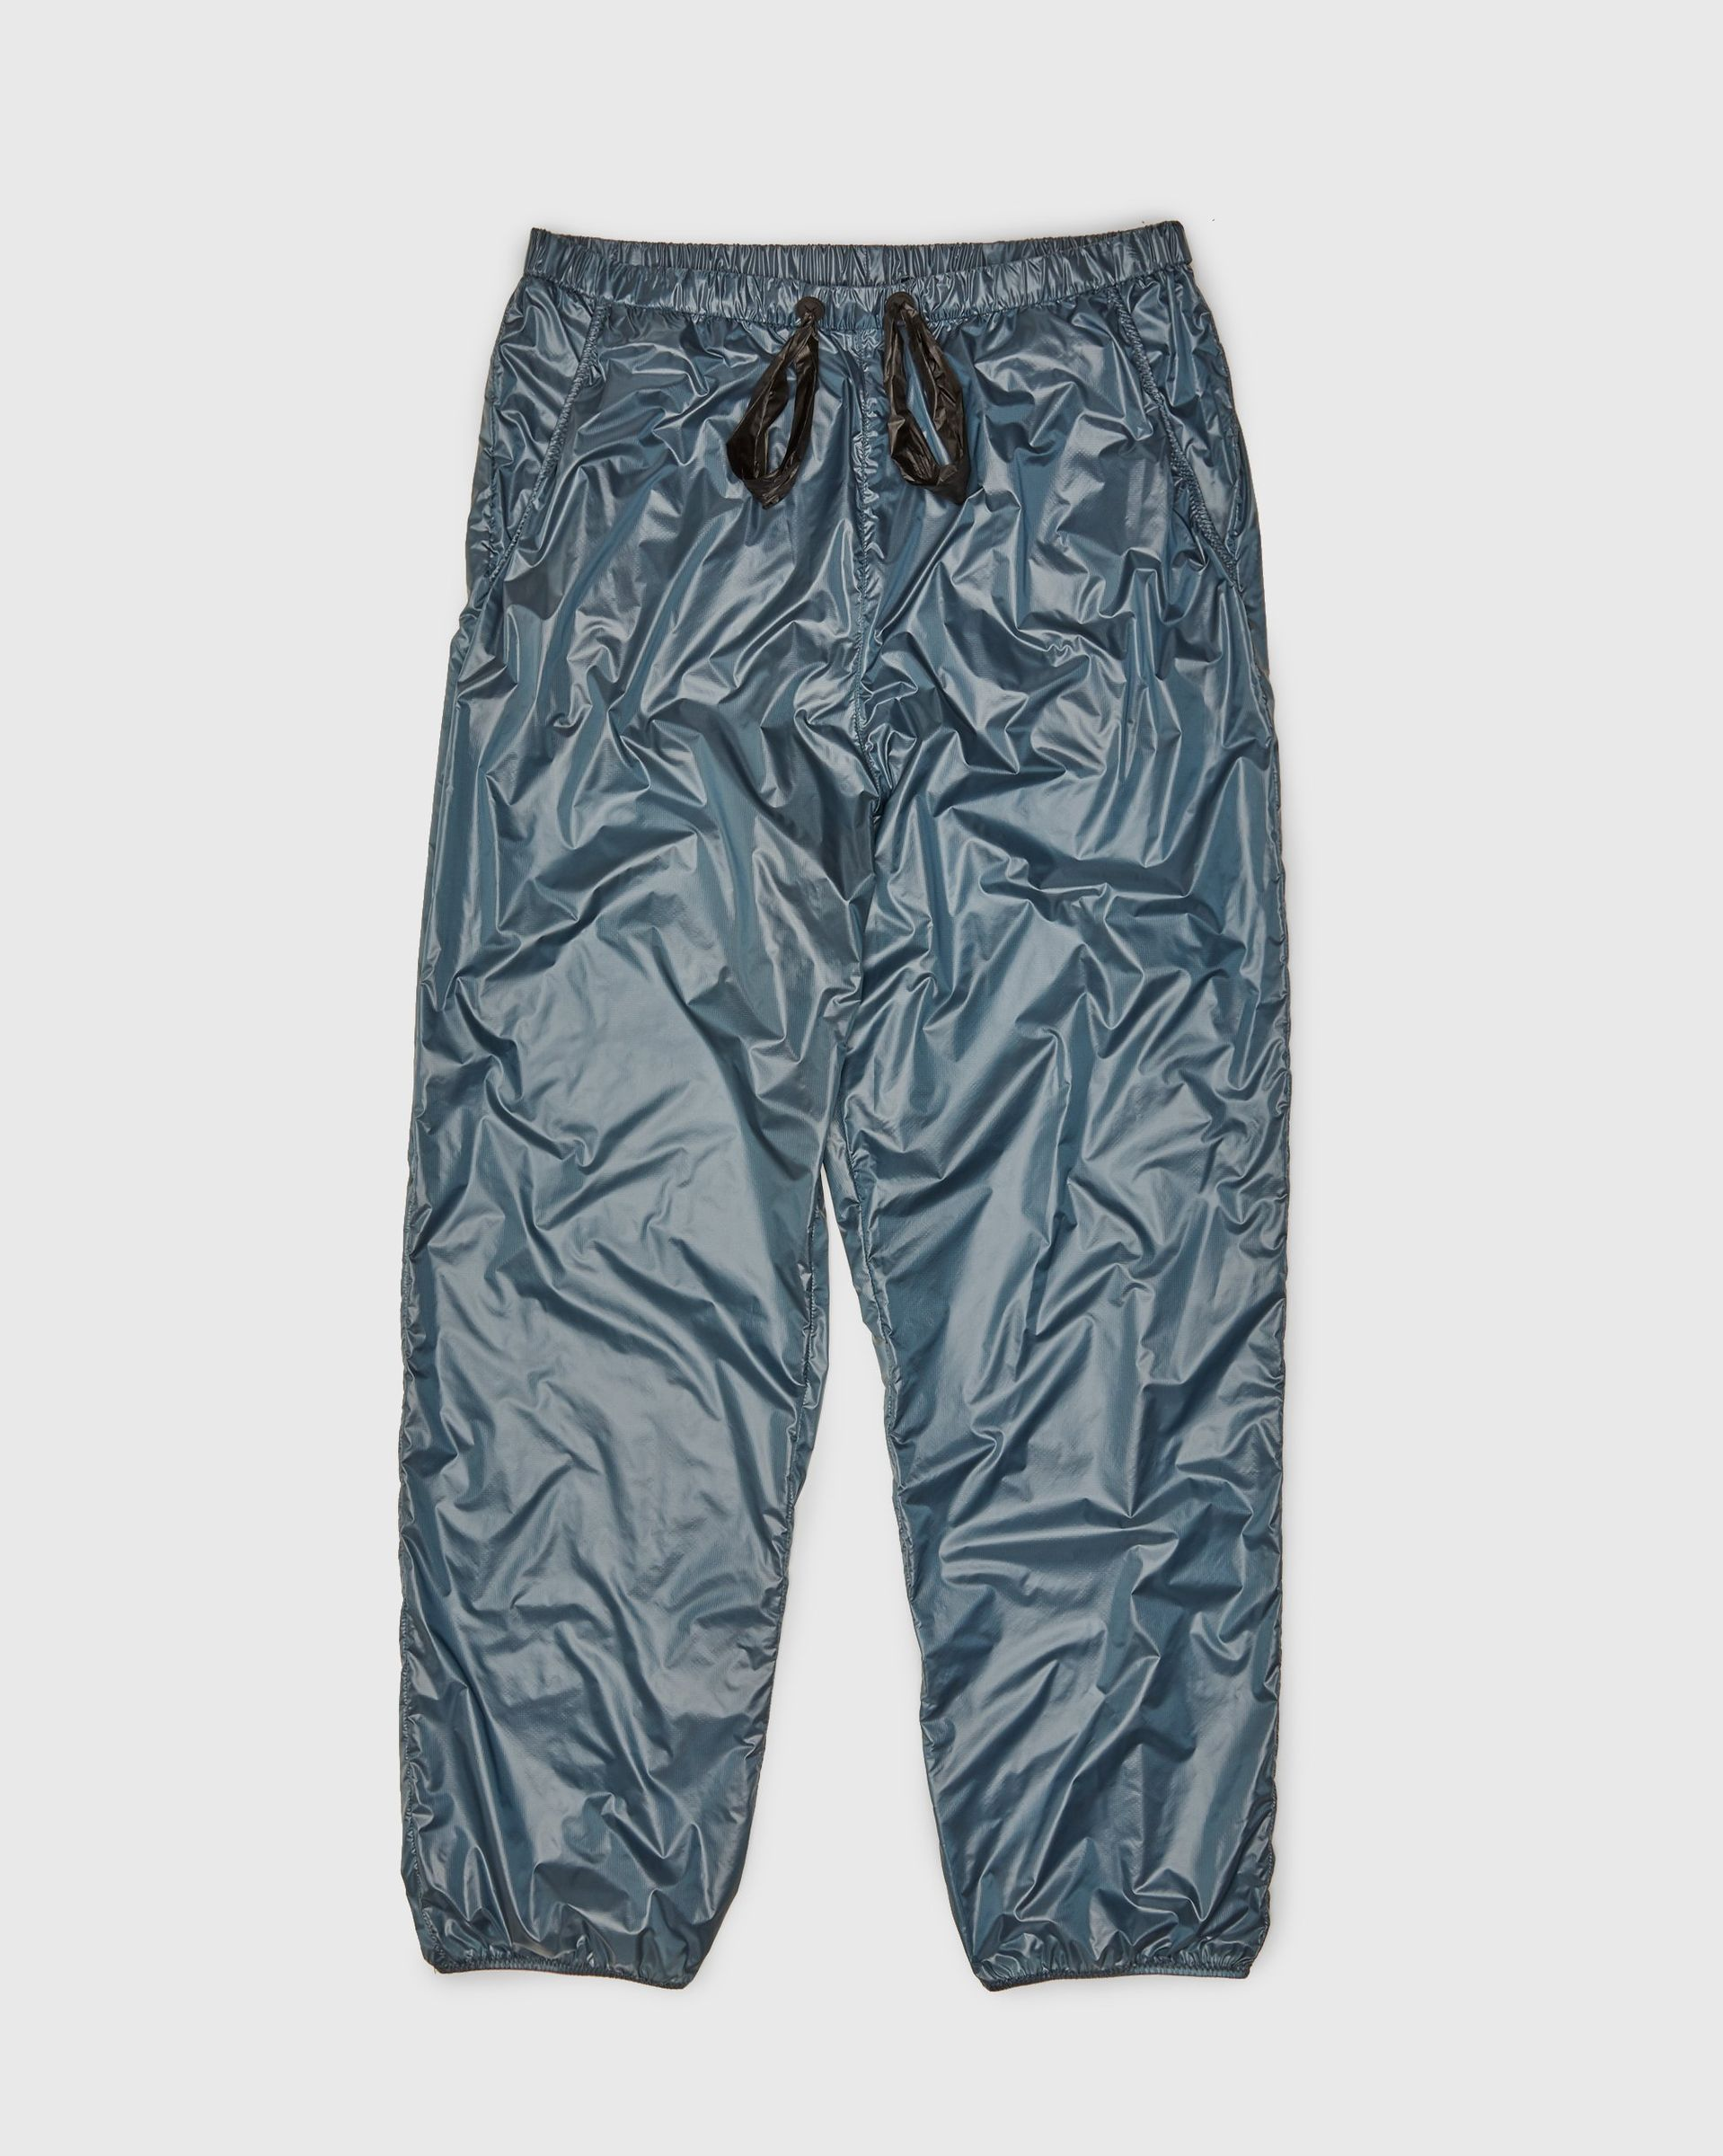 5 Moncler Craig Green - Trousers Grey/Blue - Image 1